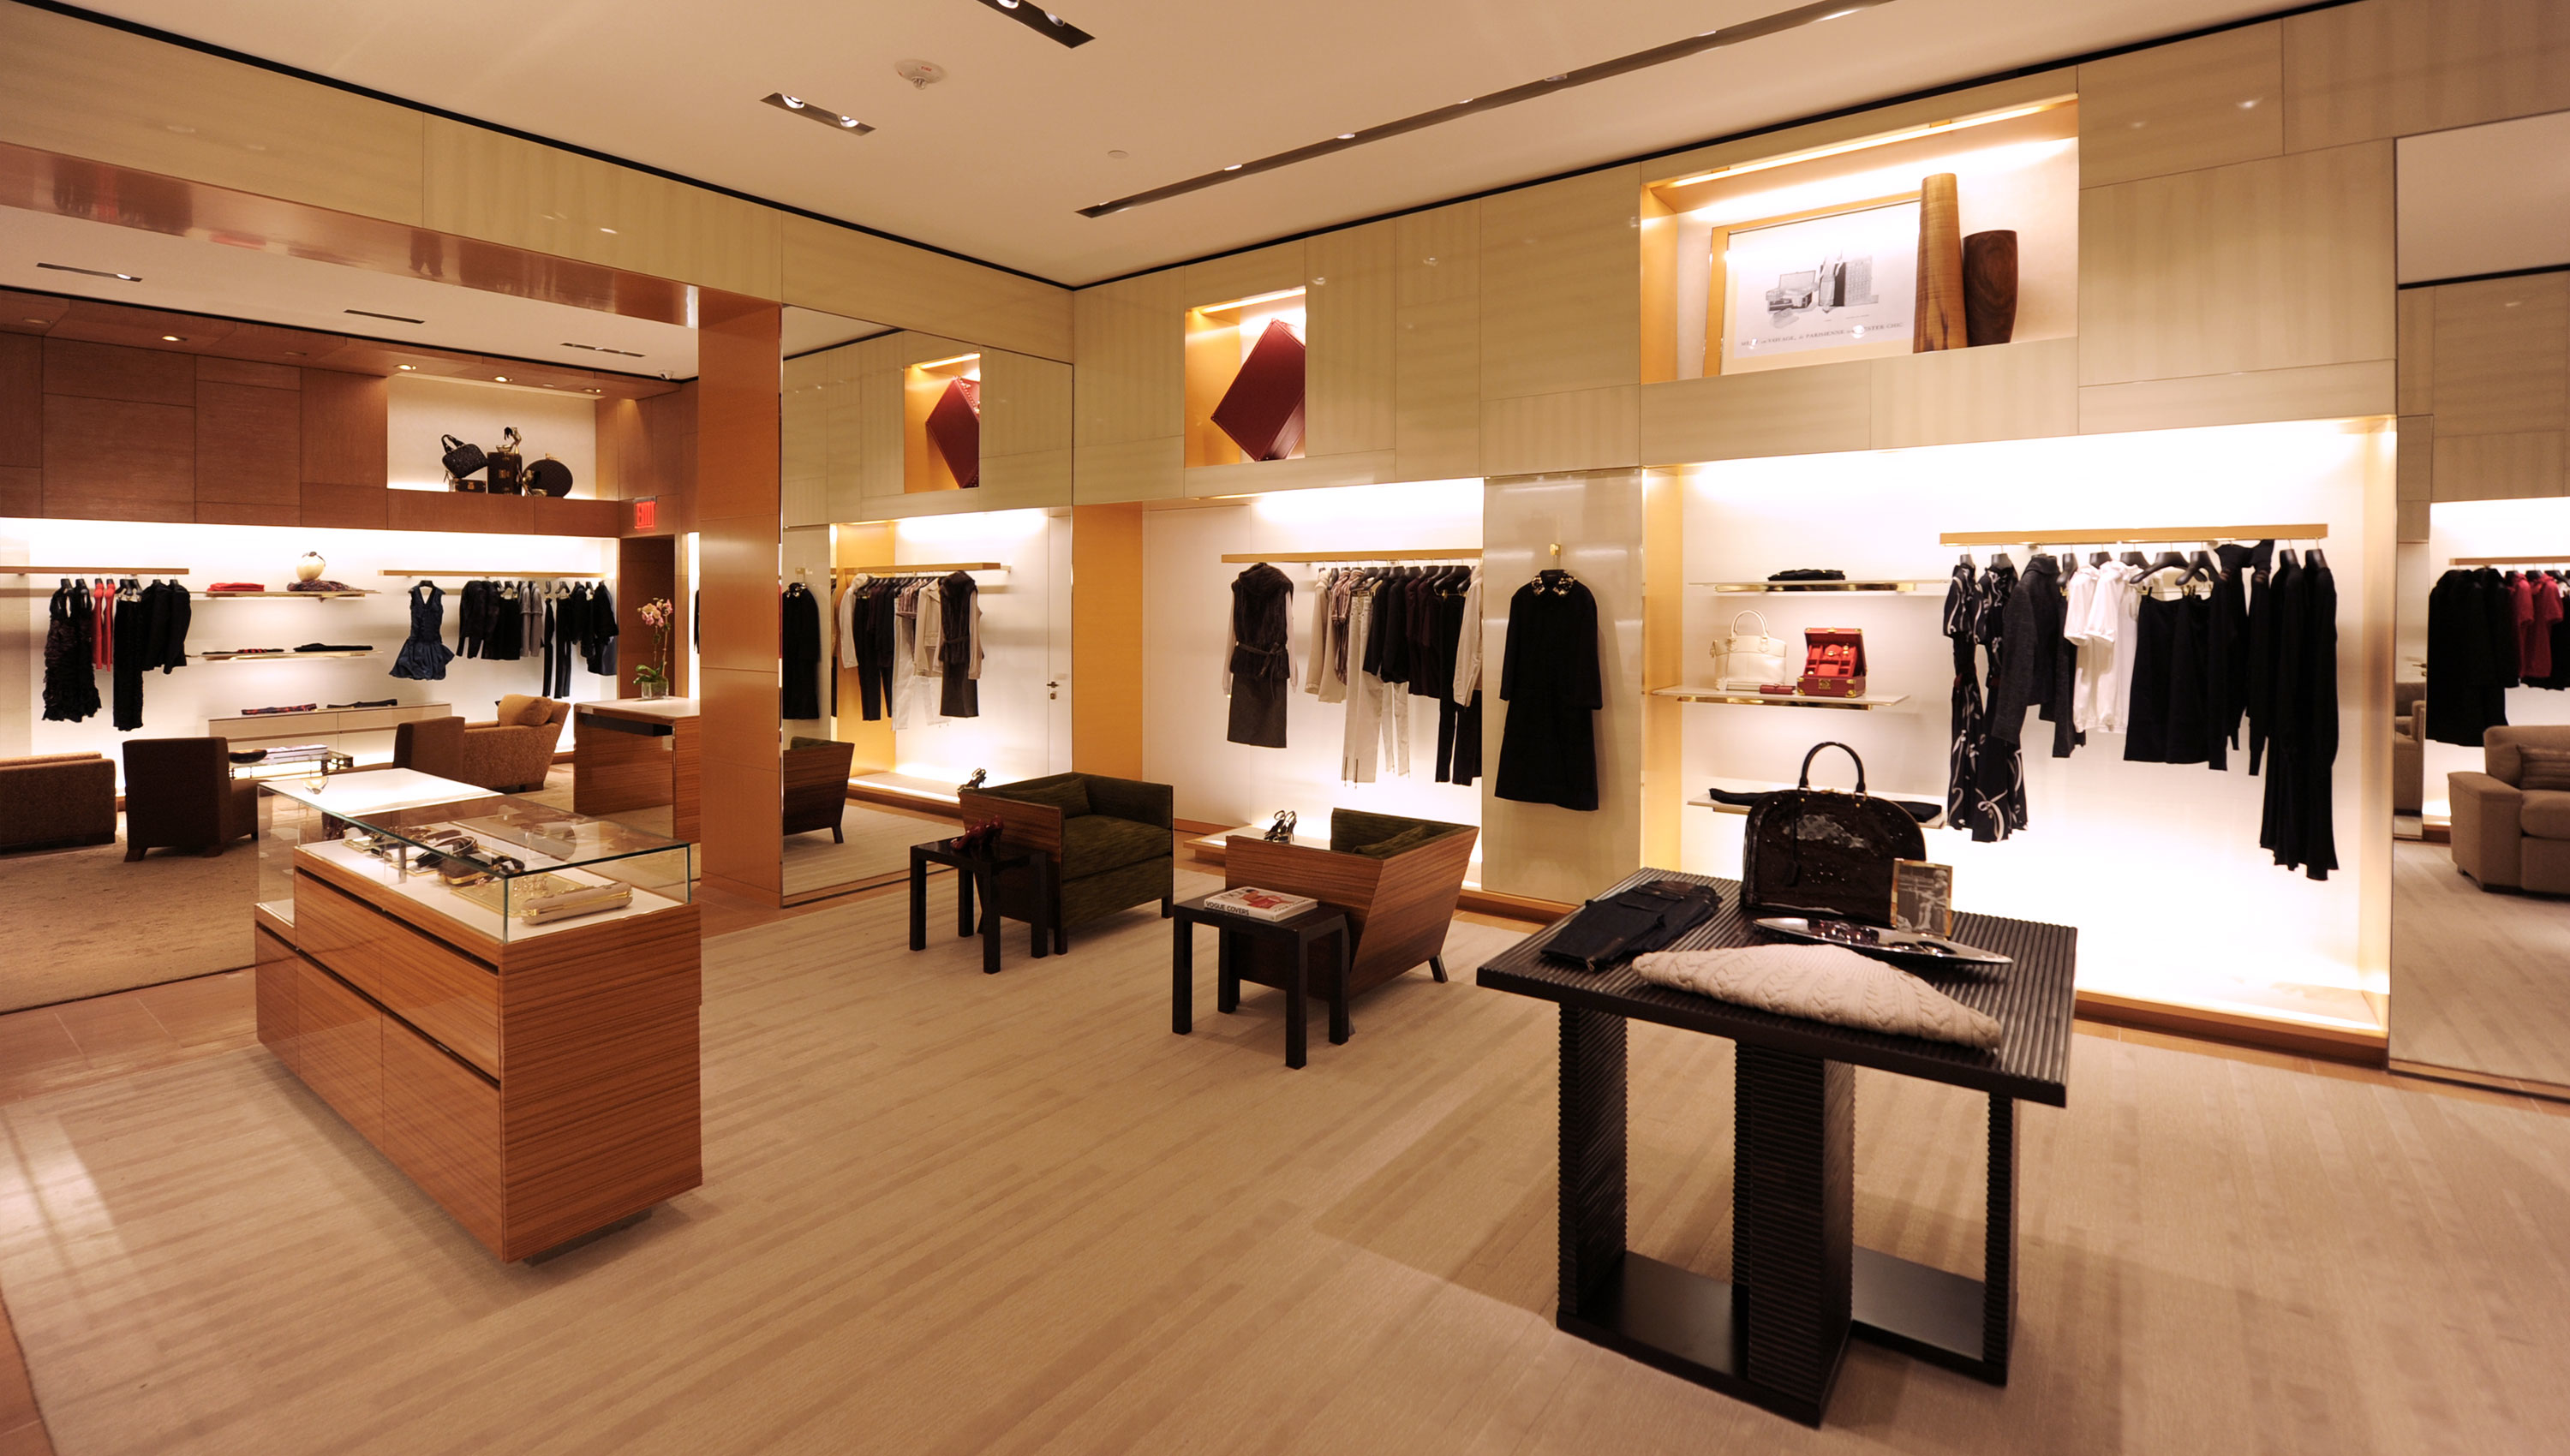 1a445f58856e Louis Vuitton New York Saks Fifth Ave Lifestyle 611 Fifth Avenue 3rd ...